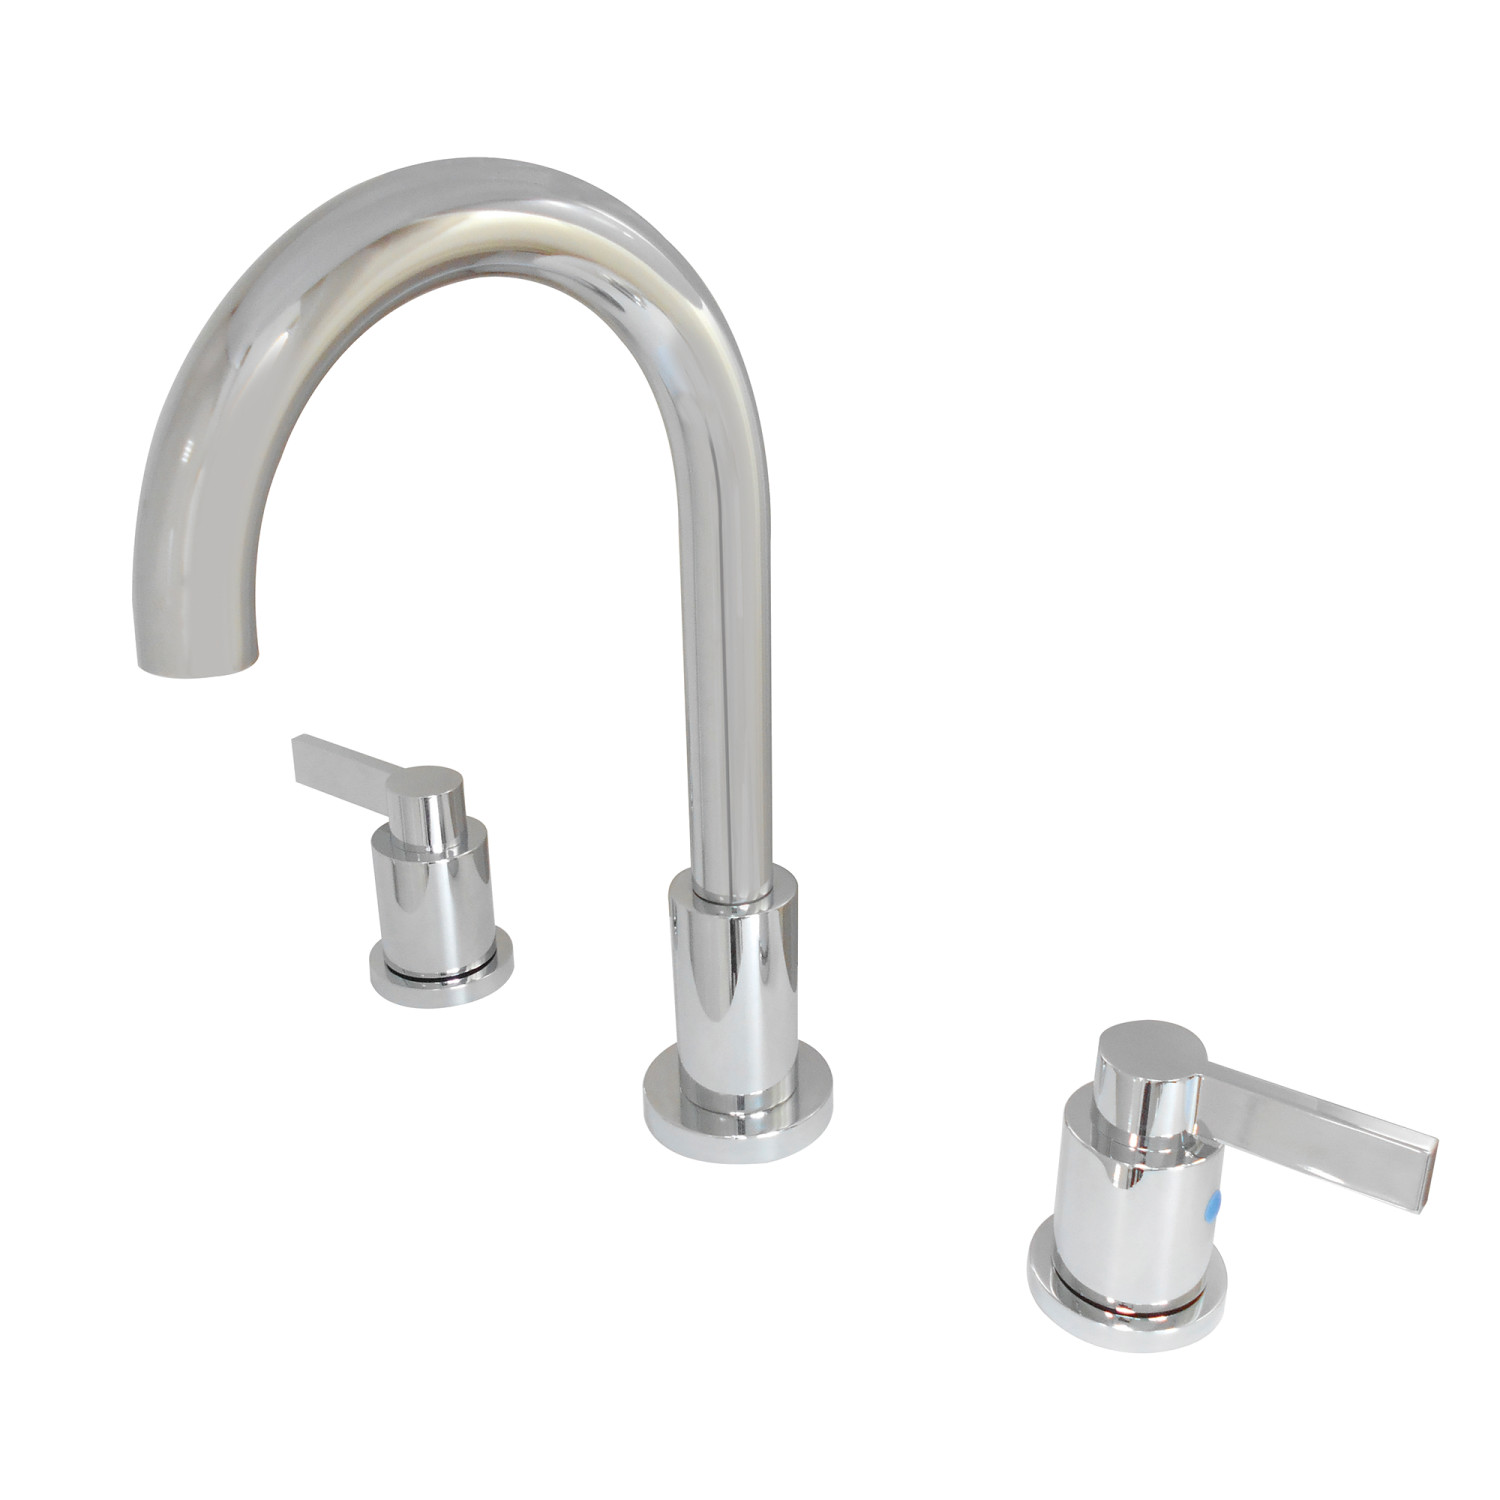 Modern Two-Handle Three-Hole Deck Mounted Widespread Bathroom Faucet with Brass Pop-Up in Polished Chrome